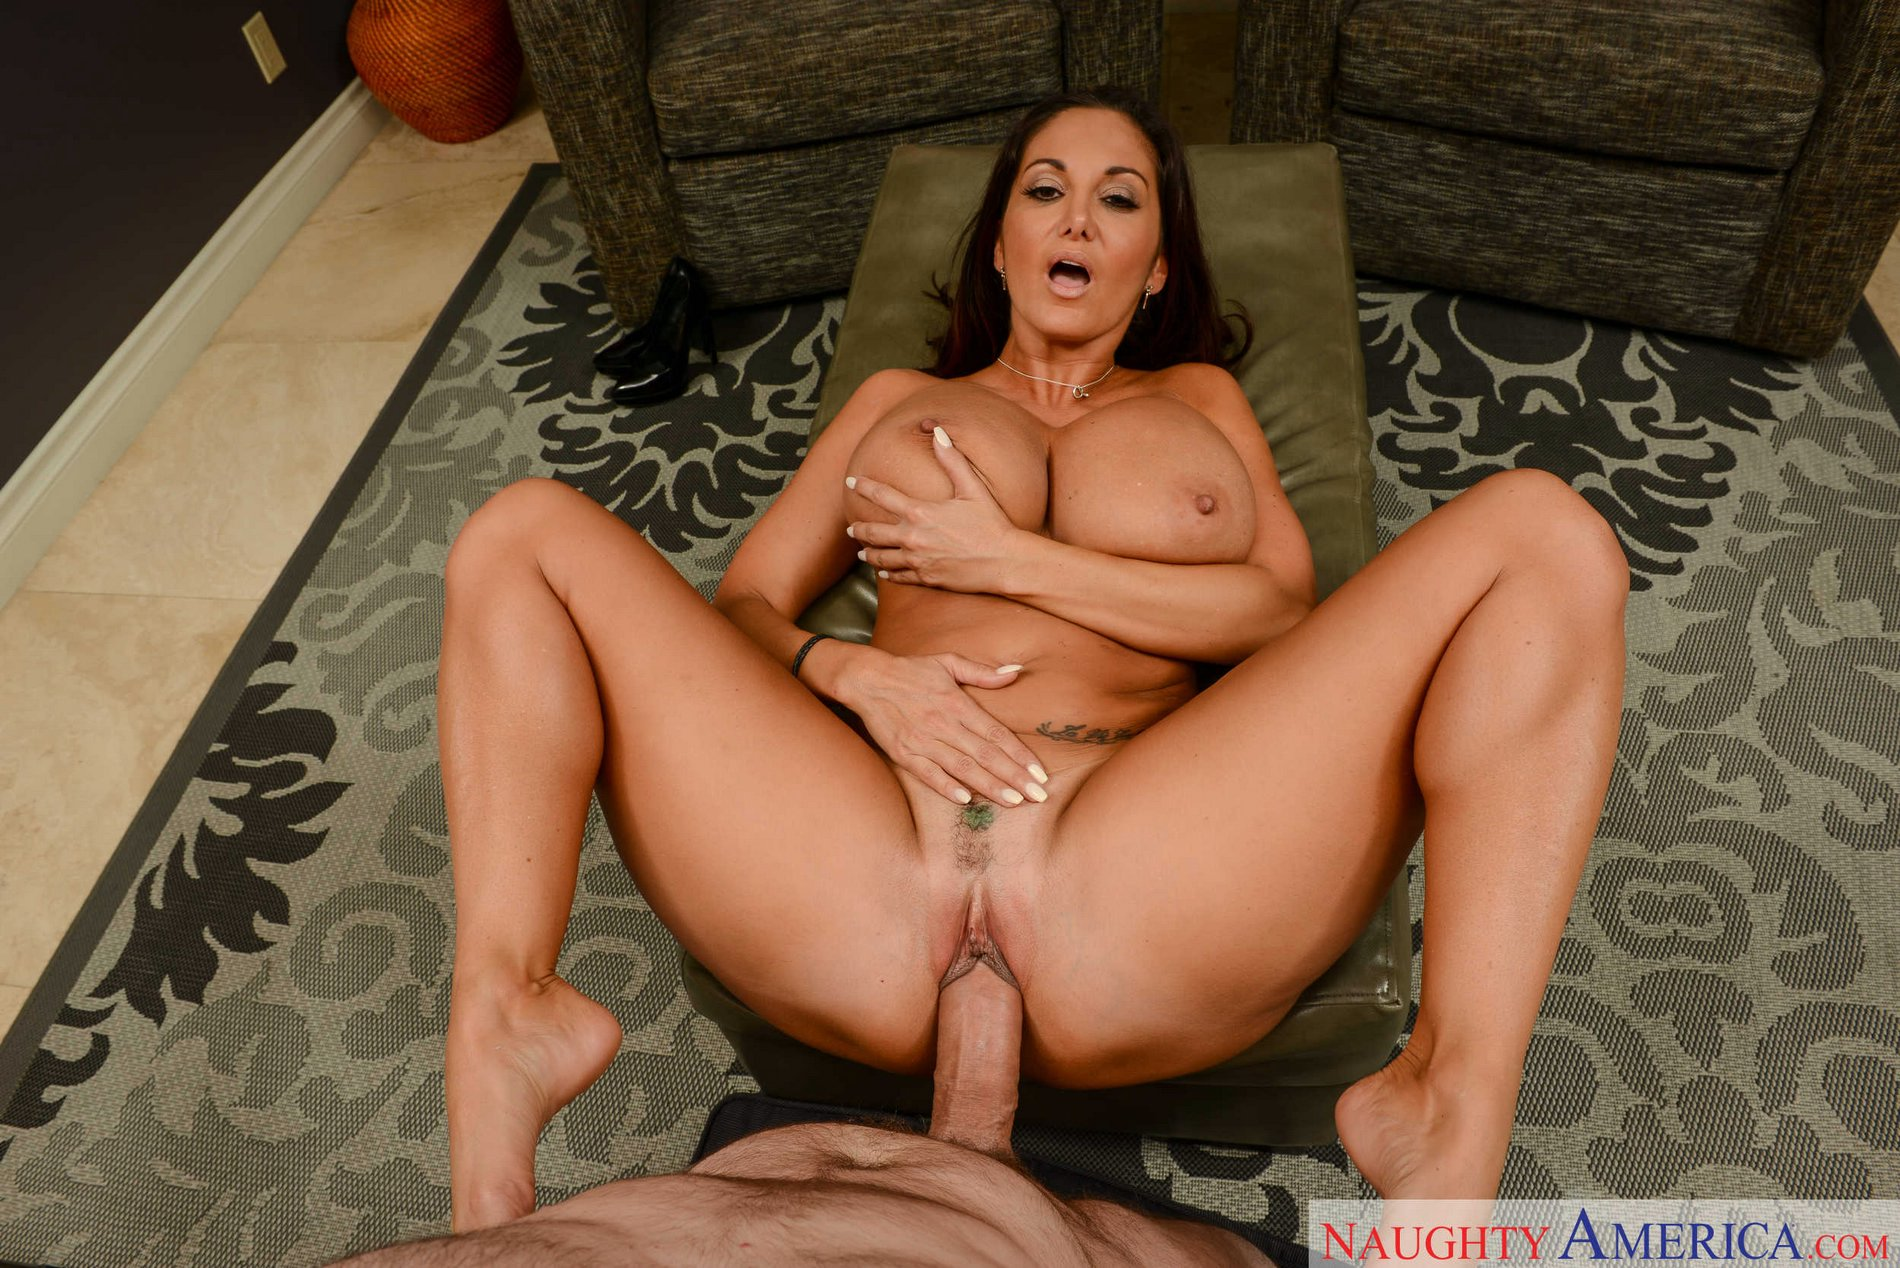 Ava addams pov cock riding amp cum swallow 8